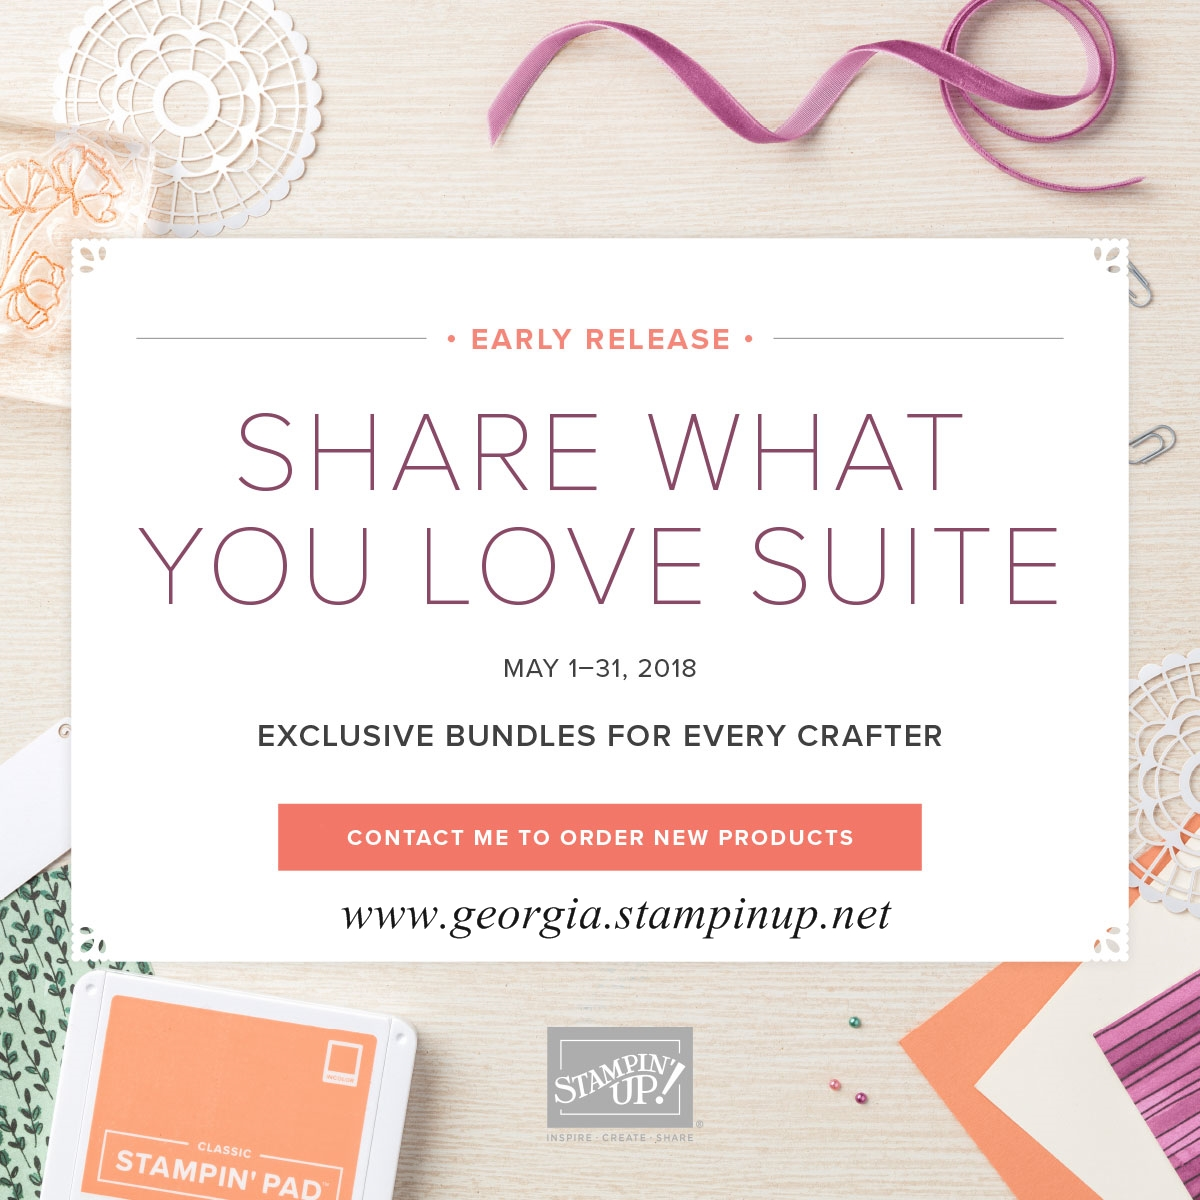 Share What You Love Suite Promotion . . . you can purchase this amazing bundle of products NOW, a whole month before they're released in the new catalog! Full details here: www.georgia.stampinup.net